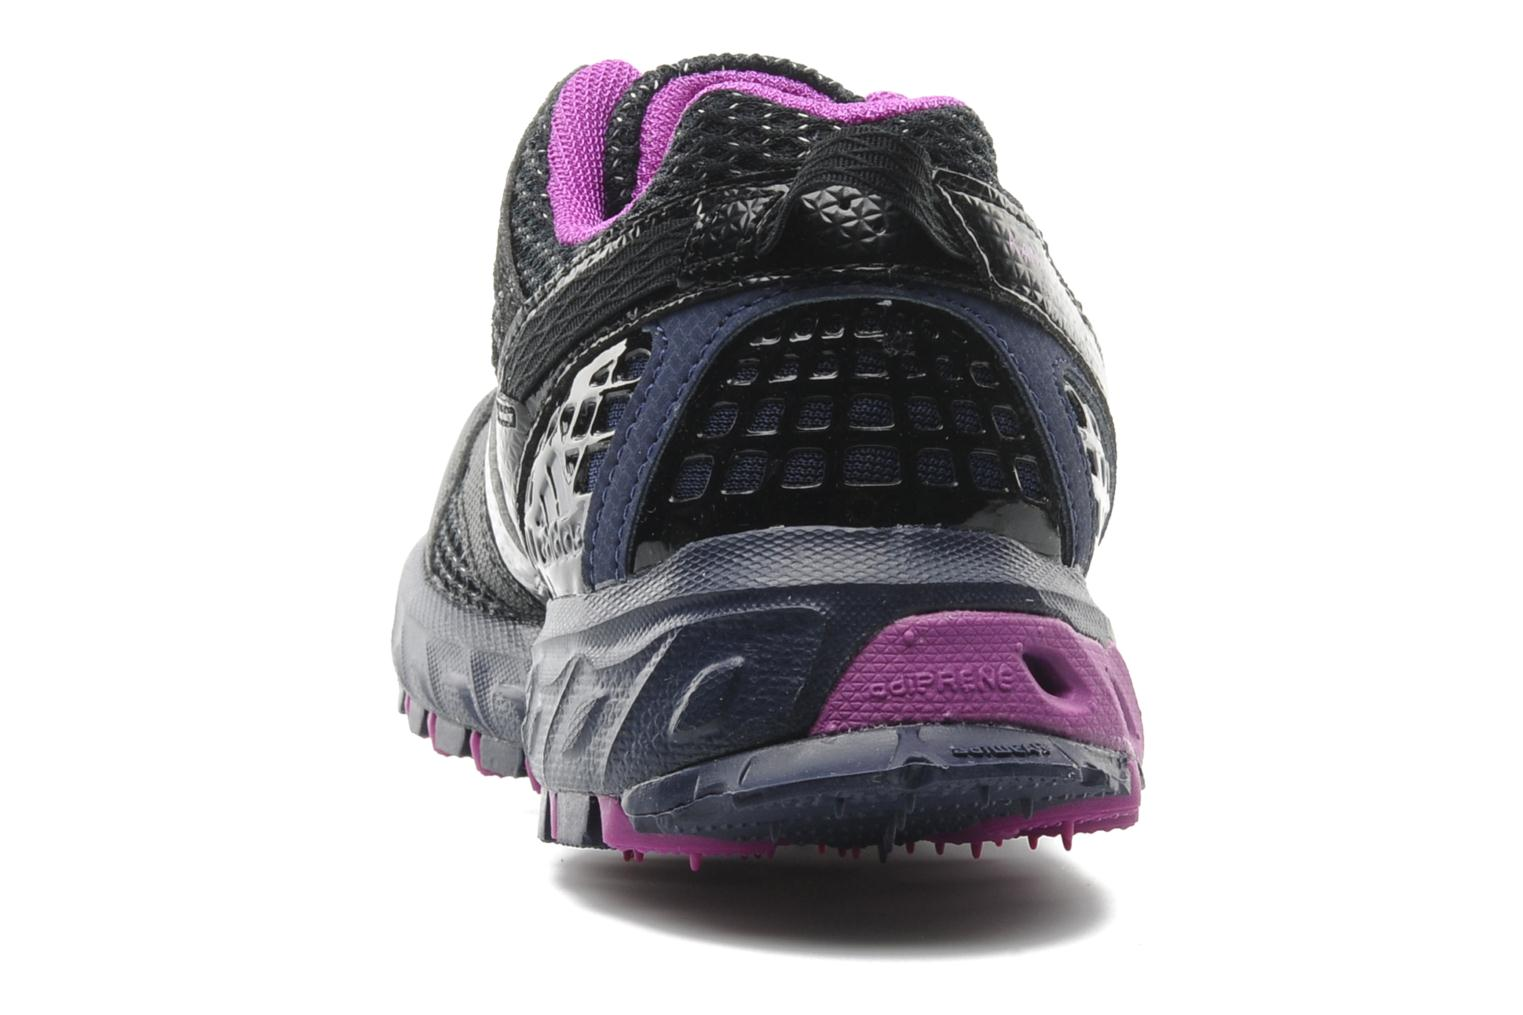 Kanadia 4 tr w BLACK 1 - METALLIC SILVER - URBAN SKY F12